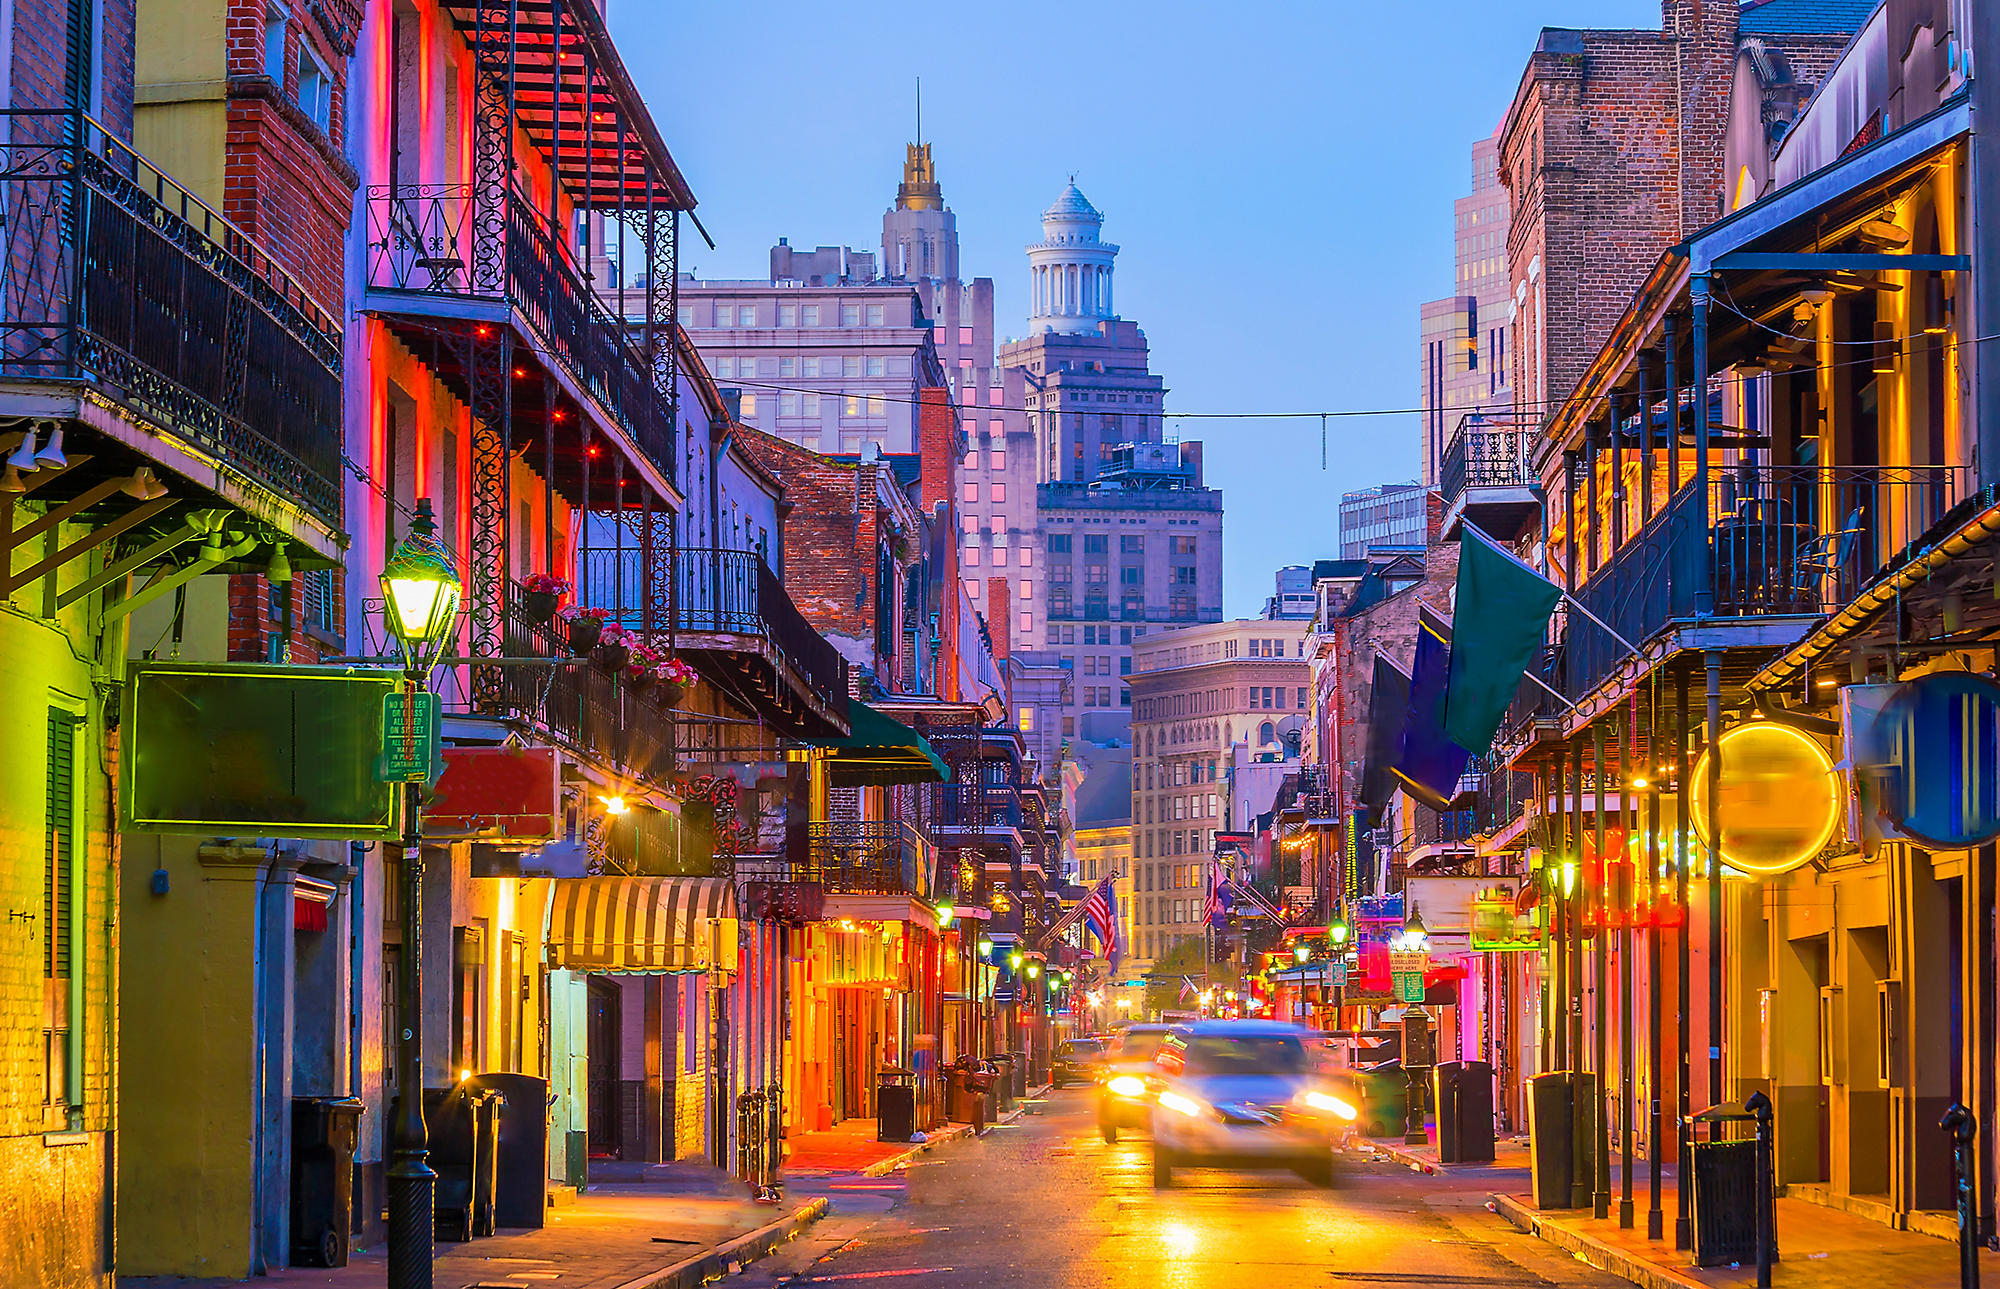 Let the Good Times Roll in The Big Easy